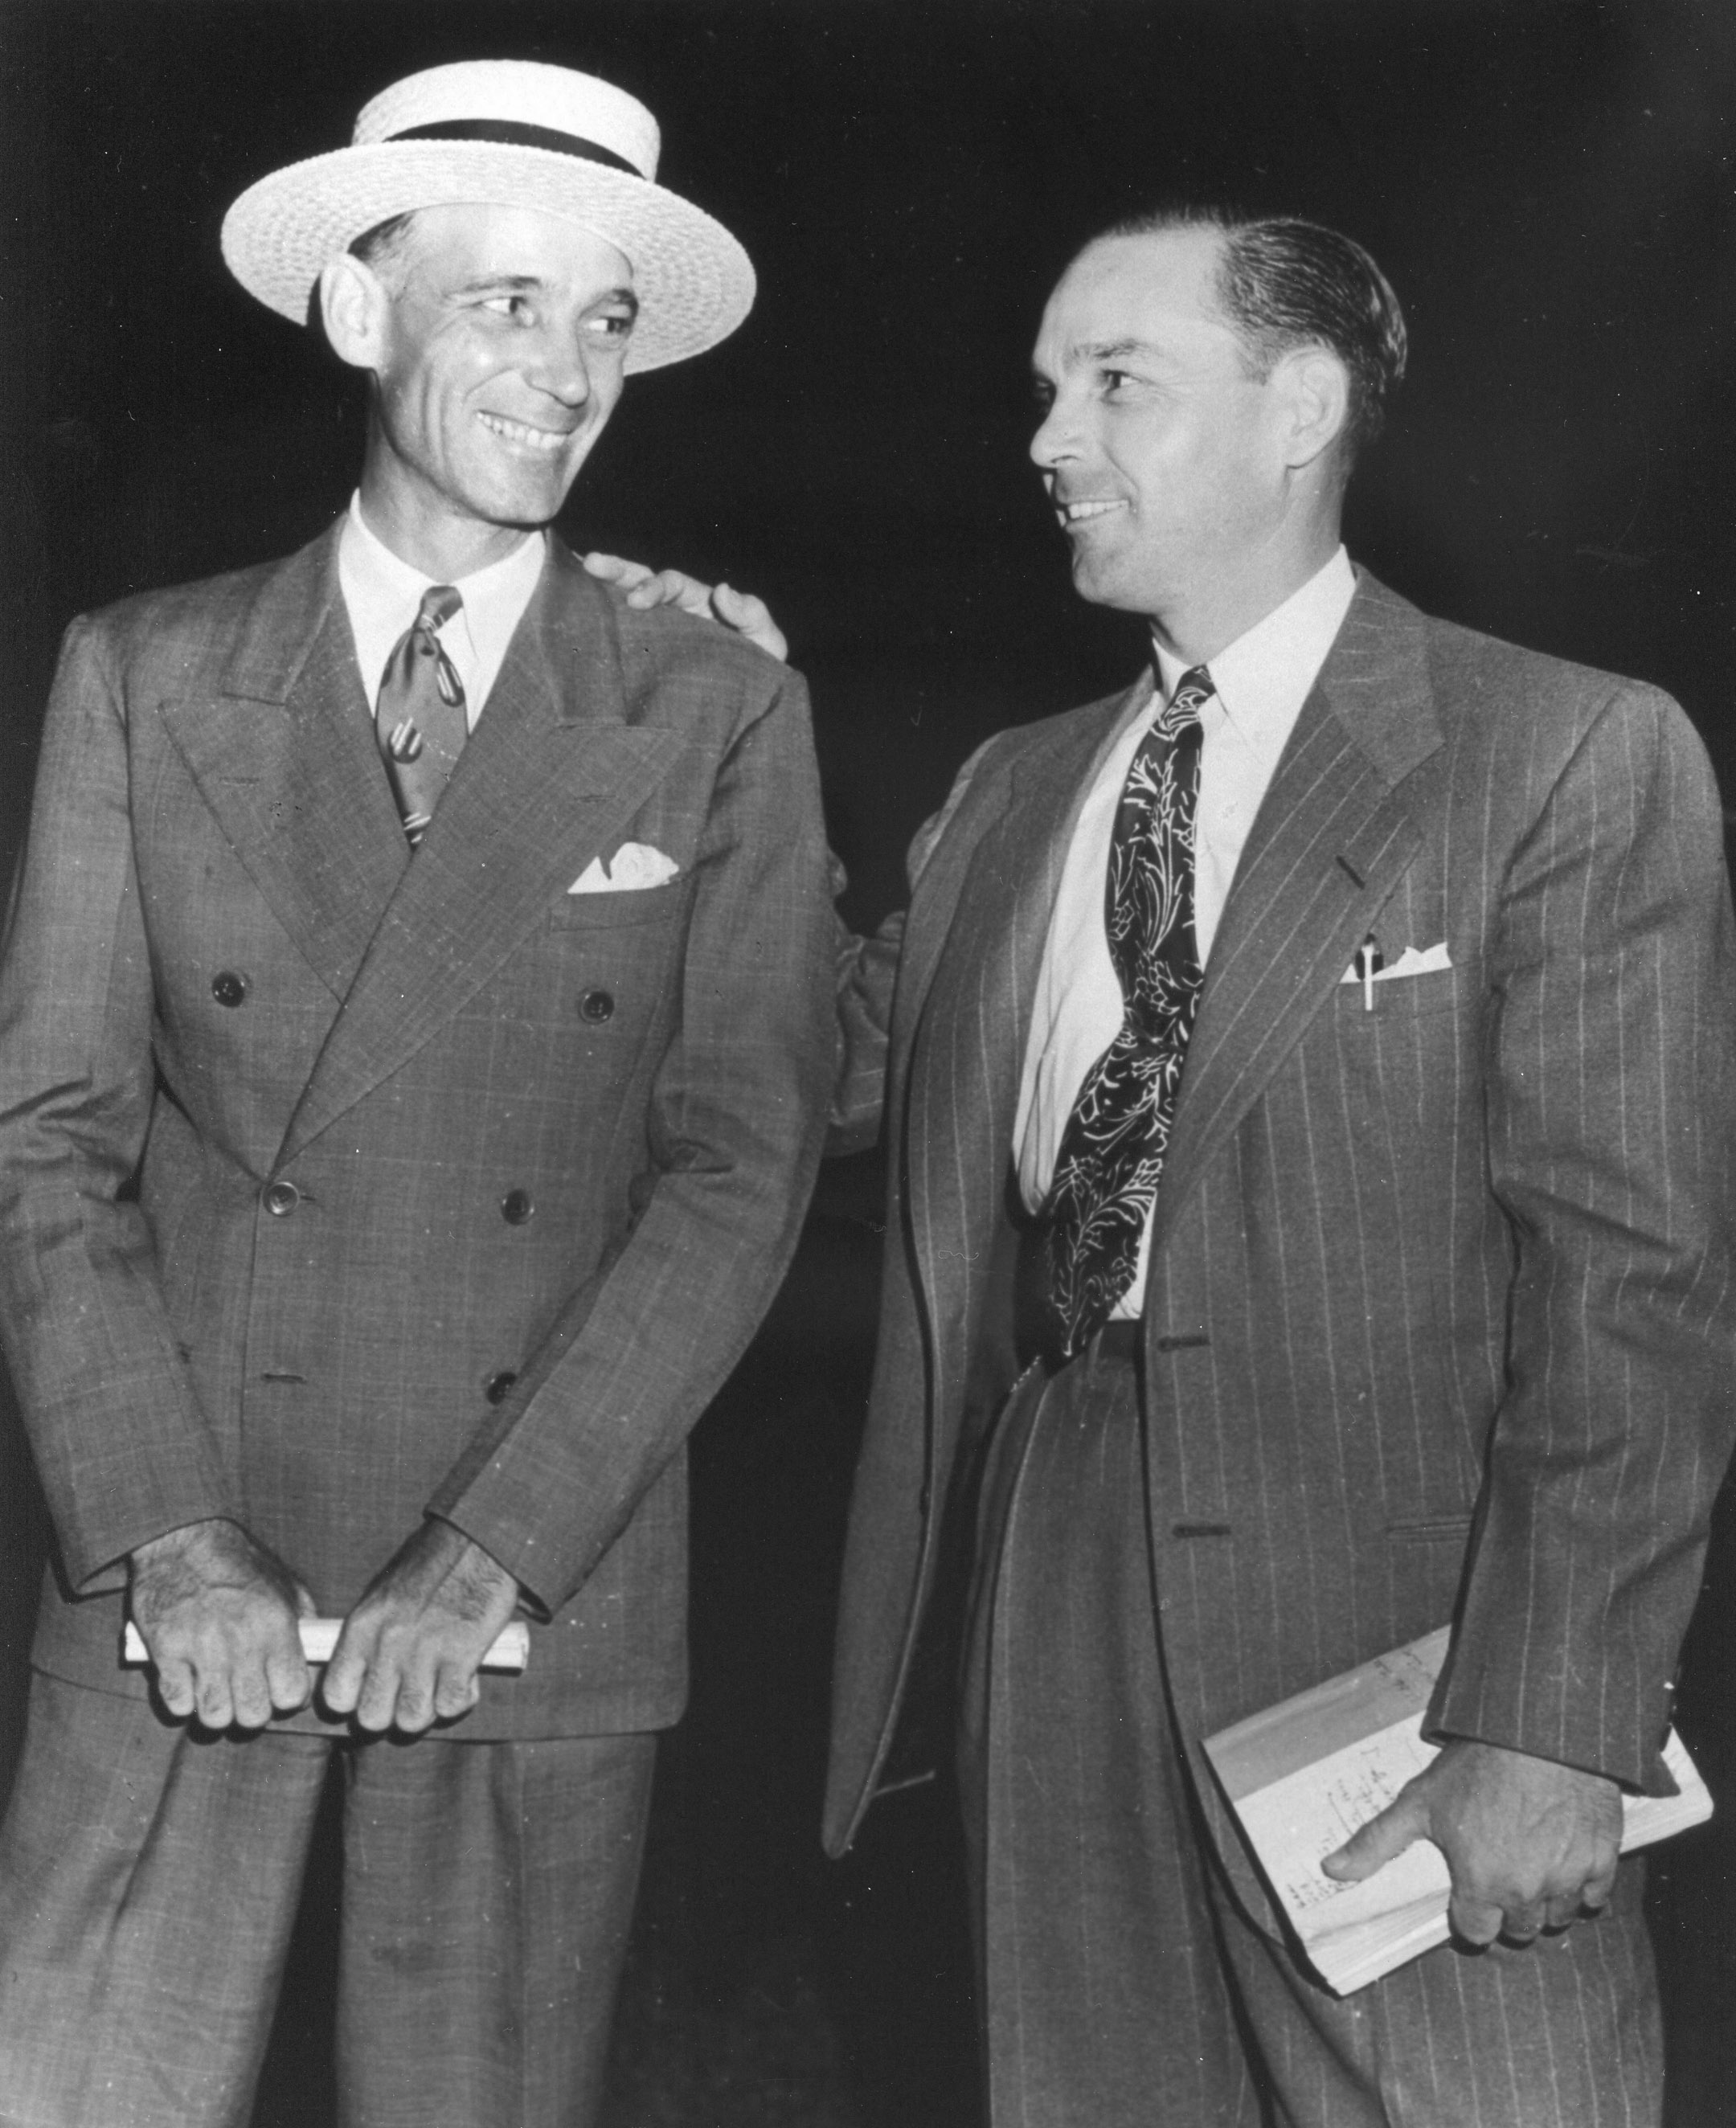 Sherill Ward (right) with father and fellow trainer John Sherill Ward (right) at the Keeneland Summer Sales in 1947 (The BloodHorse/Museum Collection)